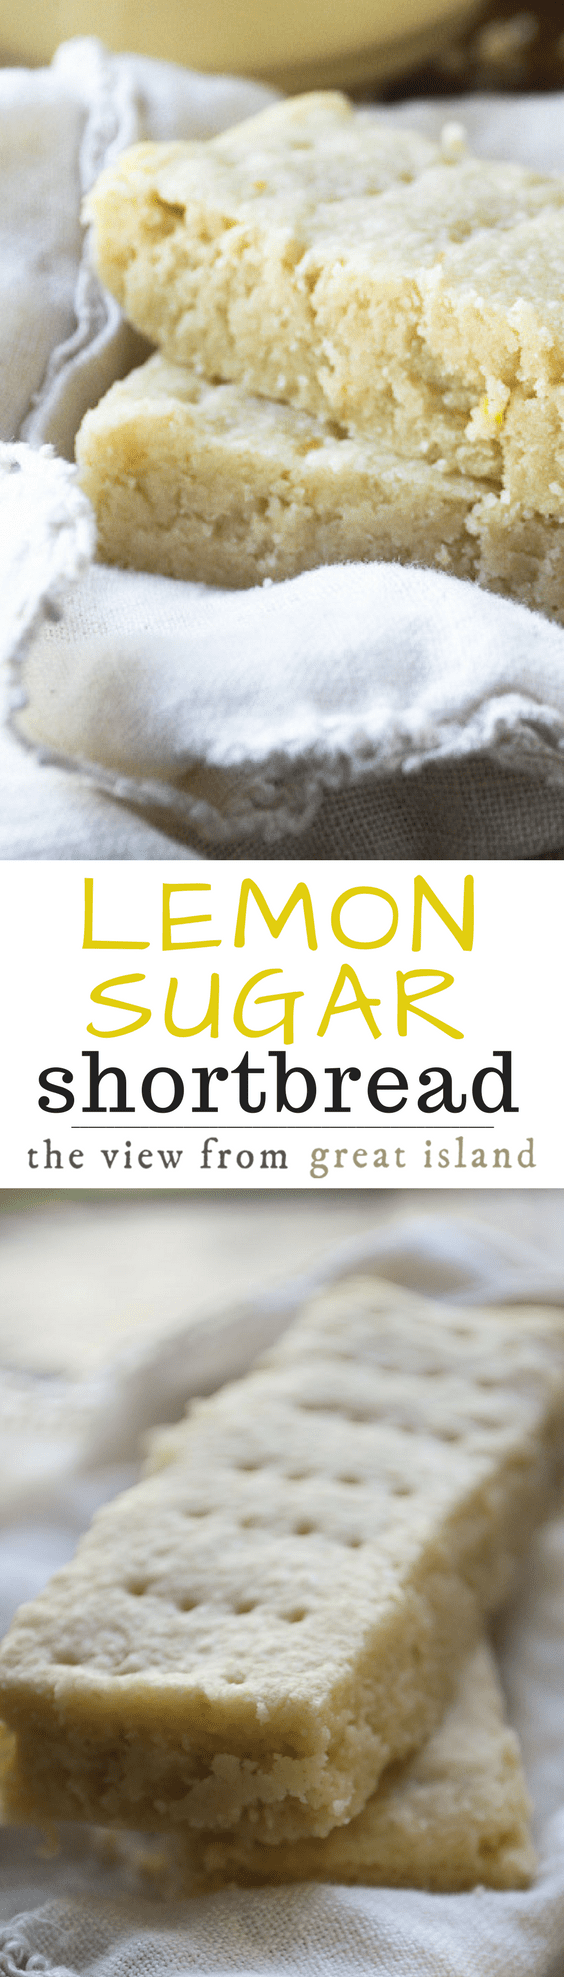 This unusual Scottish Lemon Sugar Shortbread is made with a fabulous sugar infused with lemon rind --- the lemon flavor really pops! Make these classic lemon dessert bars for high tea or everyday snacking...#dessert #shortbread #lemon #recipe #best #British #hightea #cookies #baking #lemondessert #afternoontea #tea #Scottish #bars #christmas